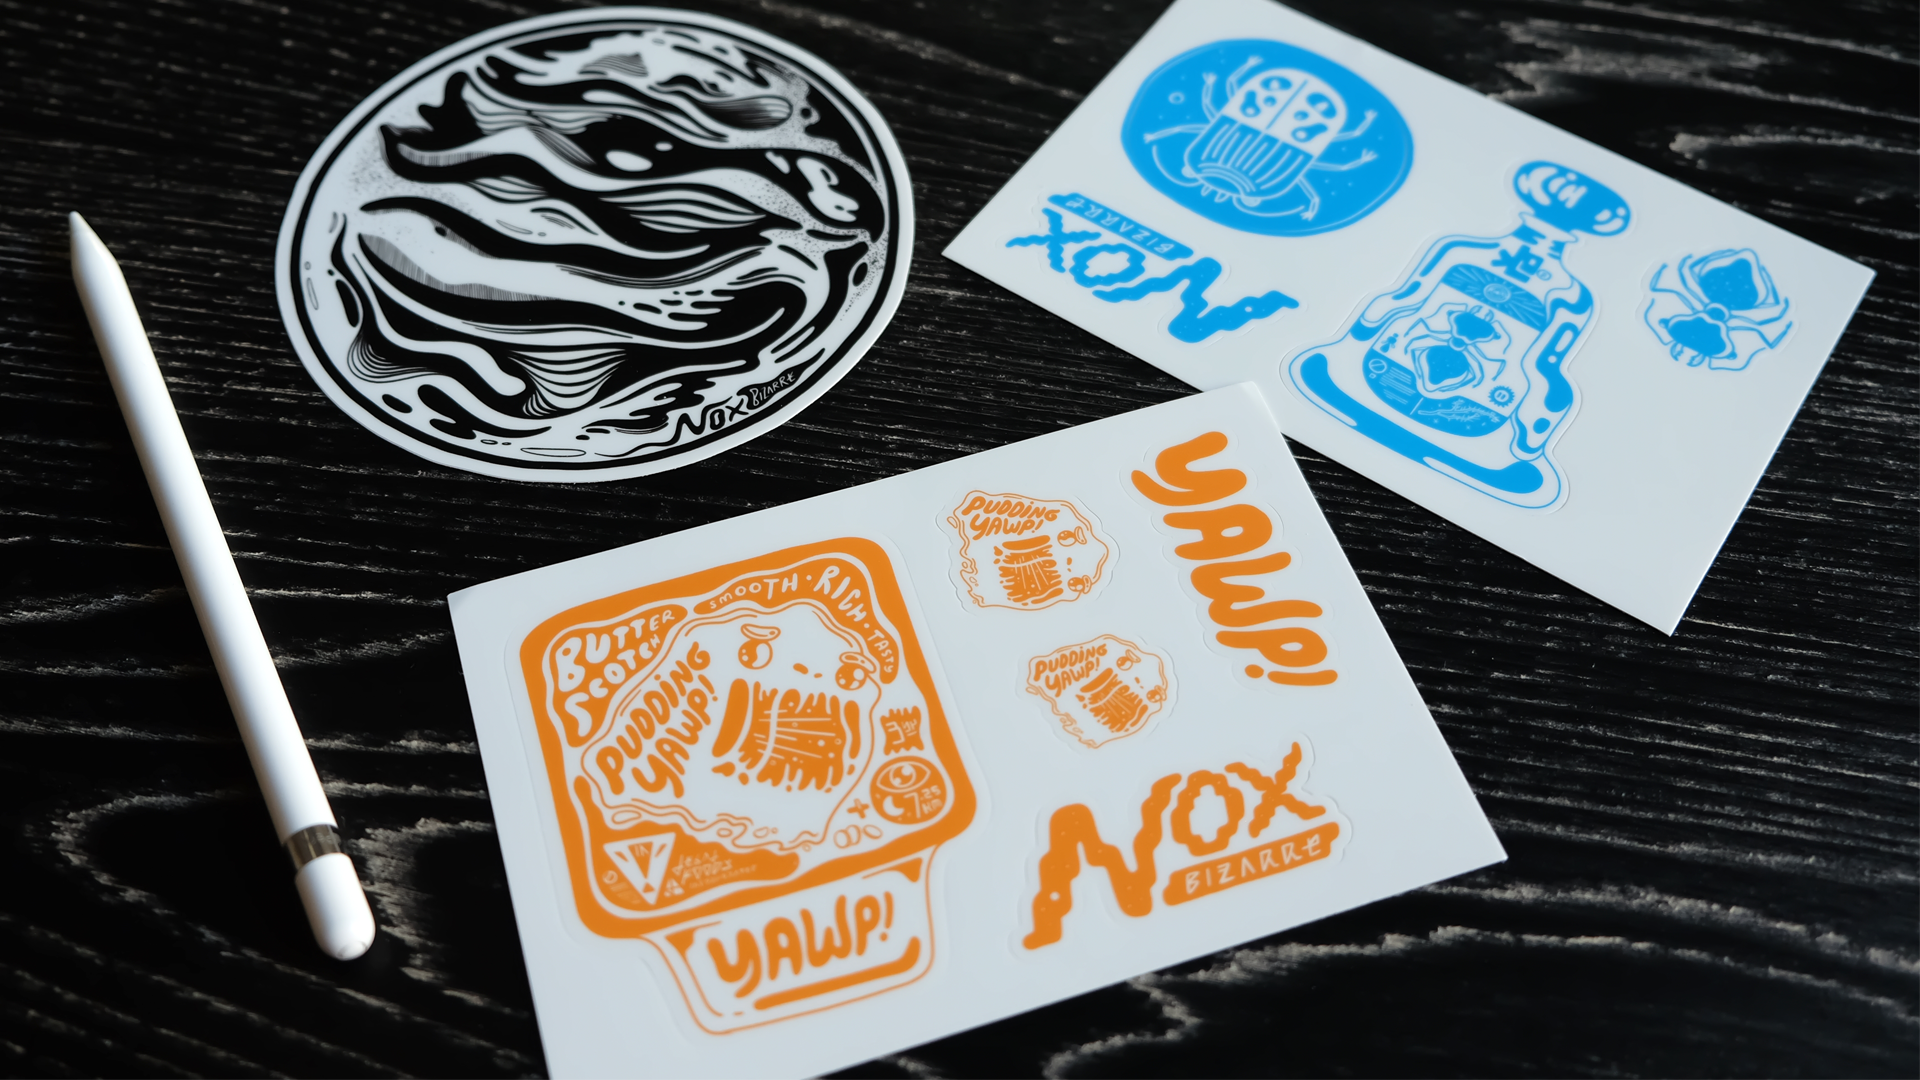 Nox-related sticky things.